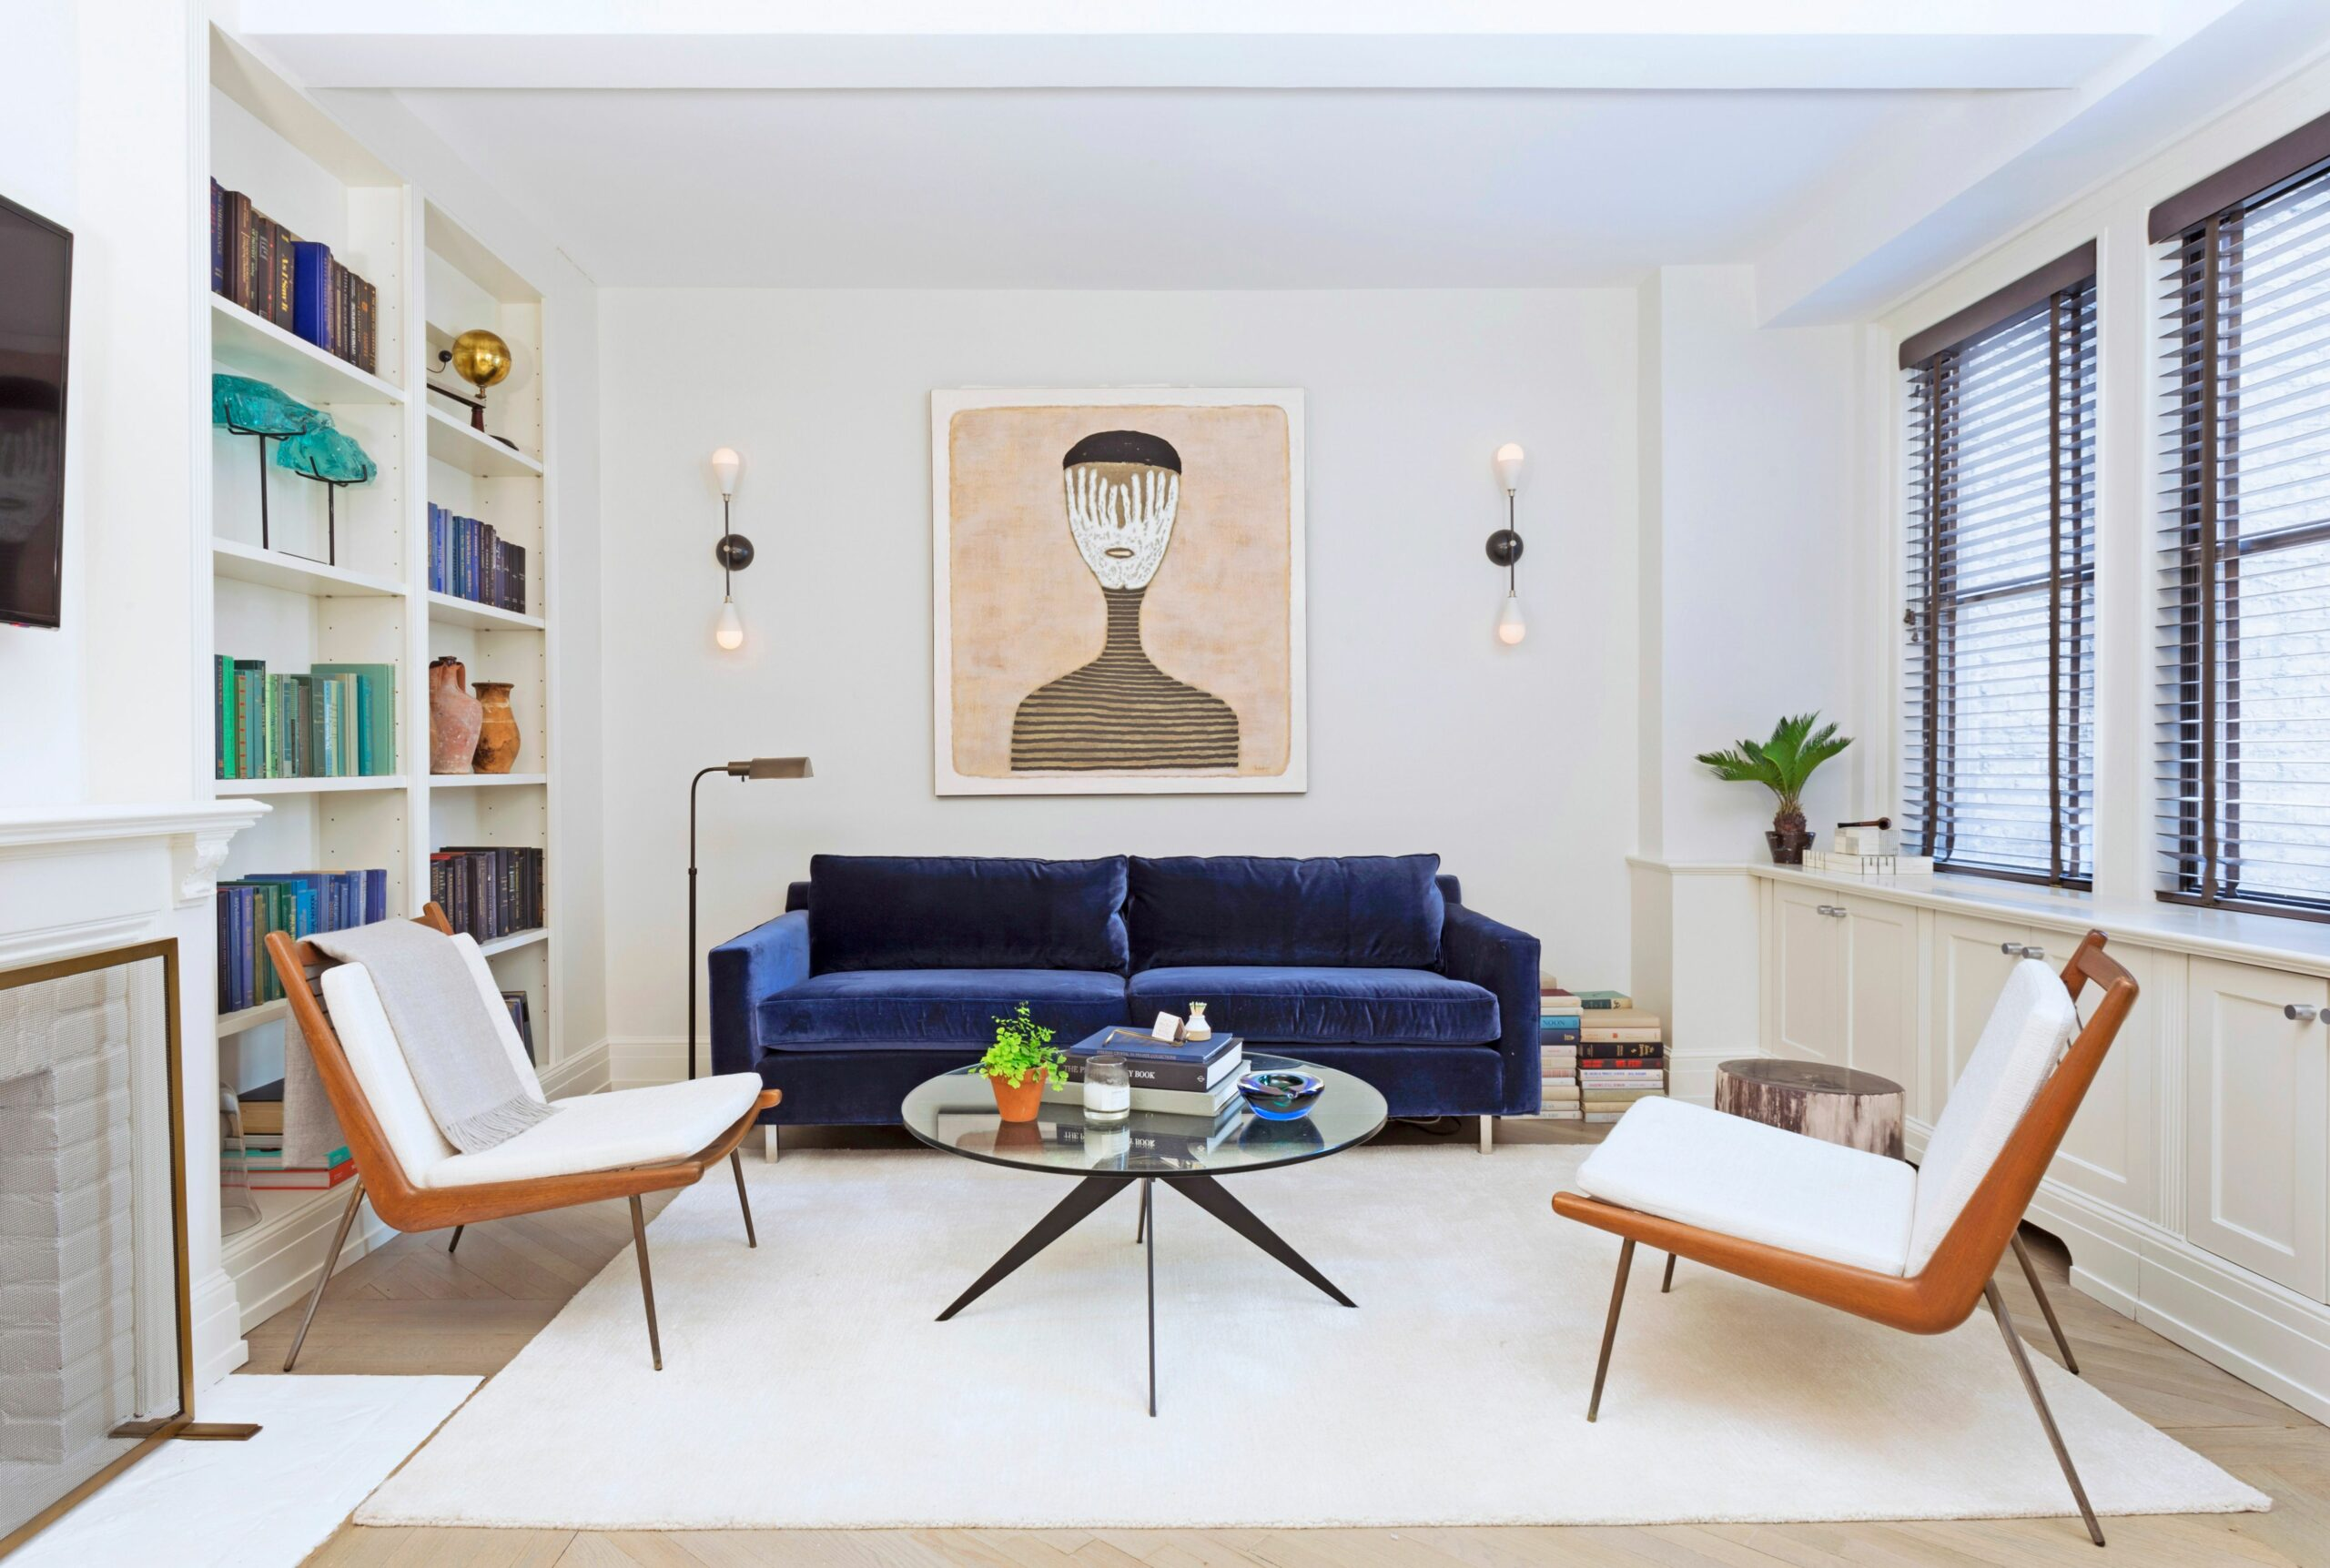 10 Wall Decor Ideas to Refresh Your Space | Architectural Digest - apartment decorating wall ideas